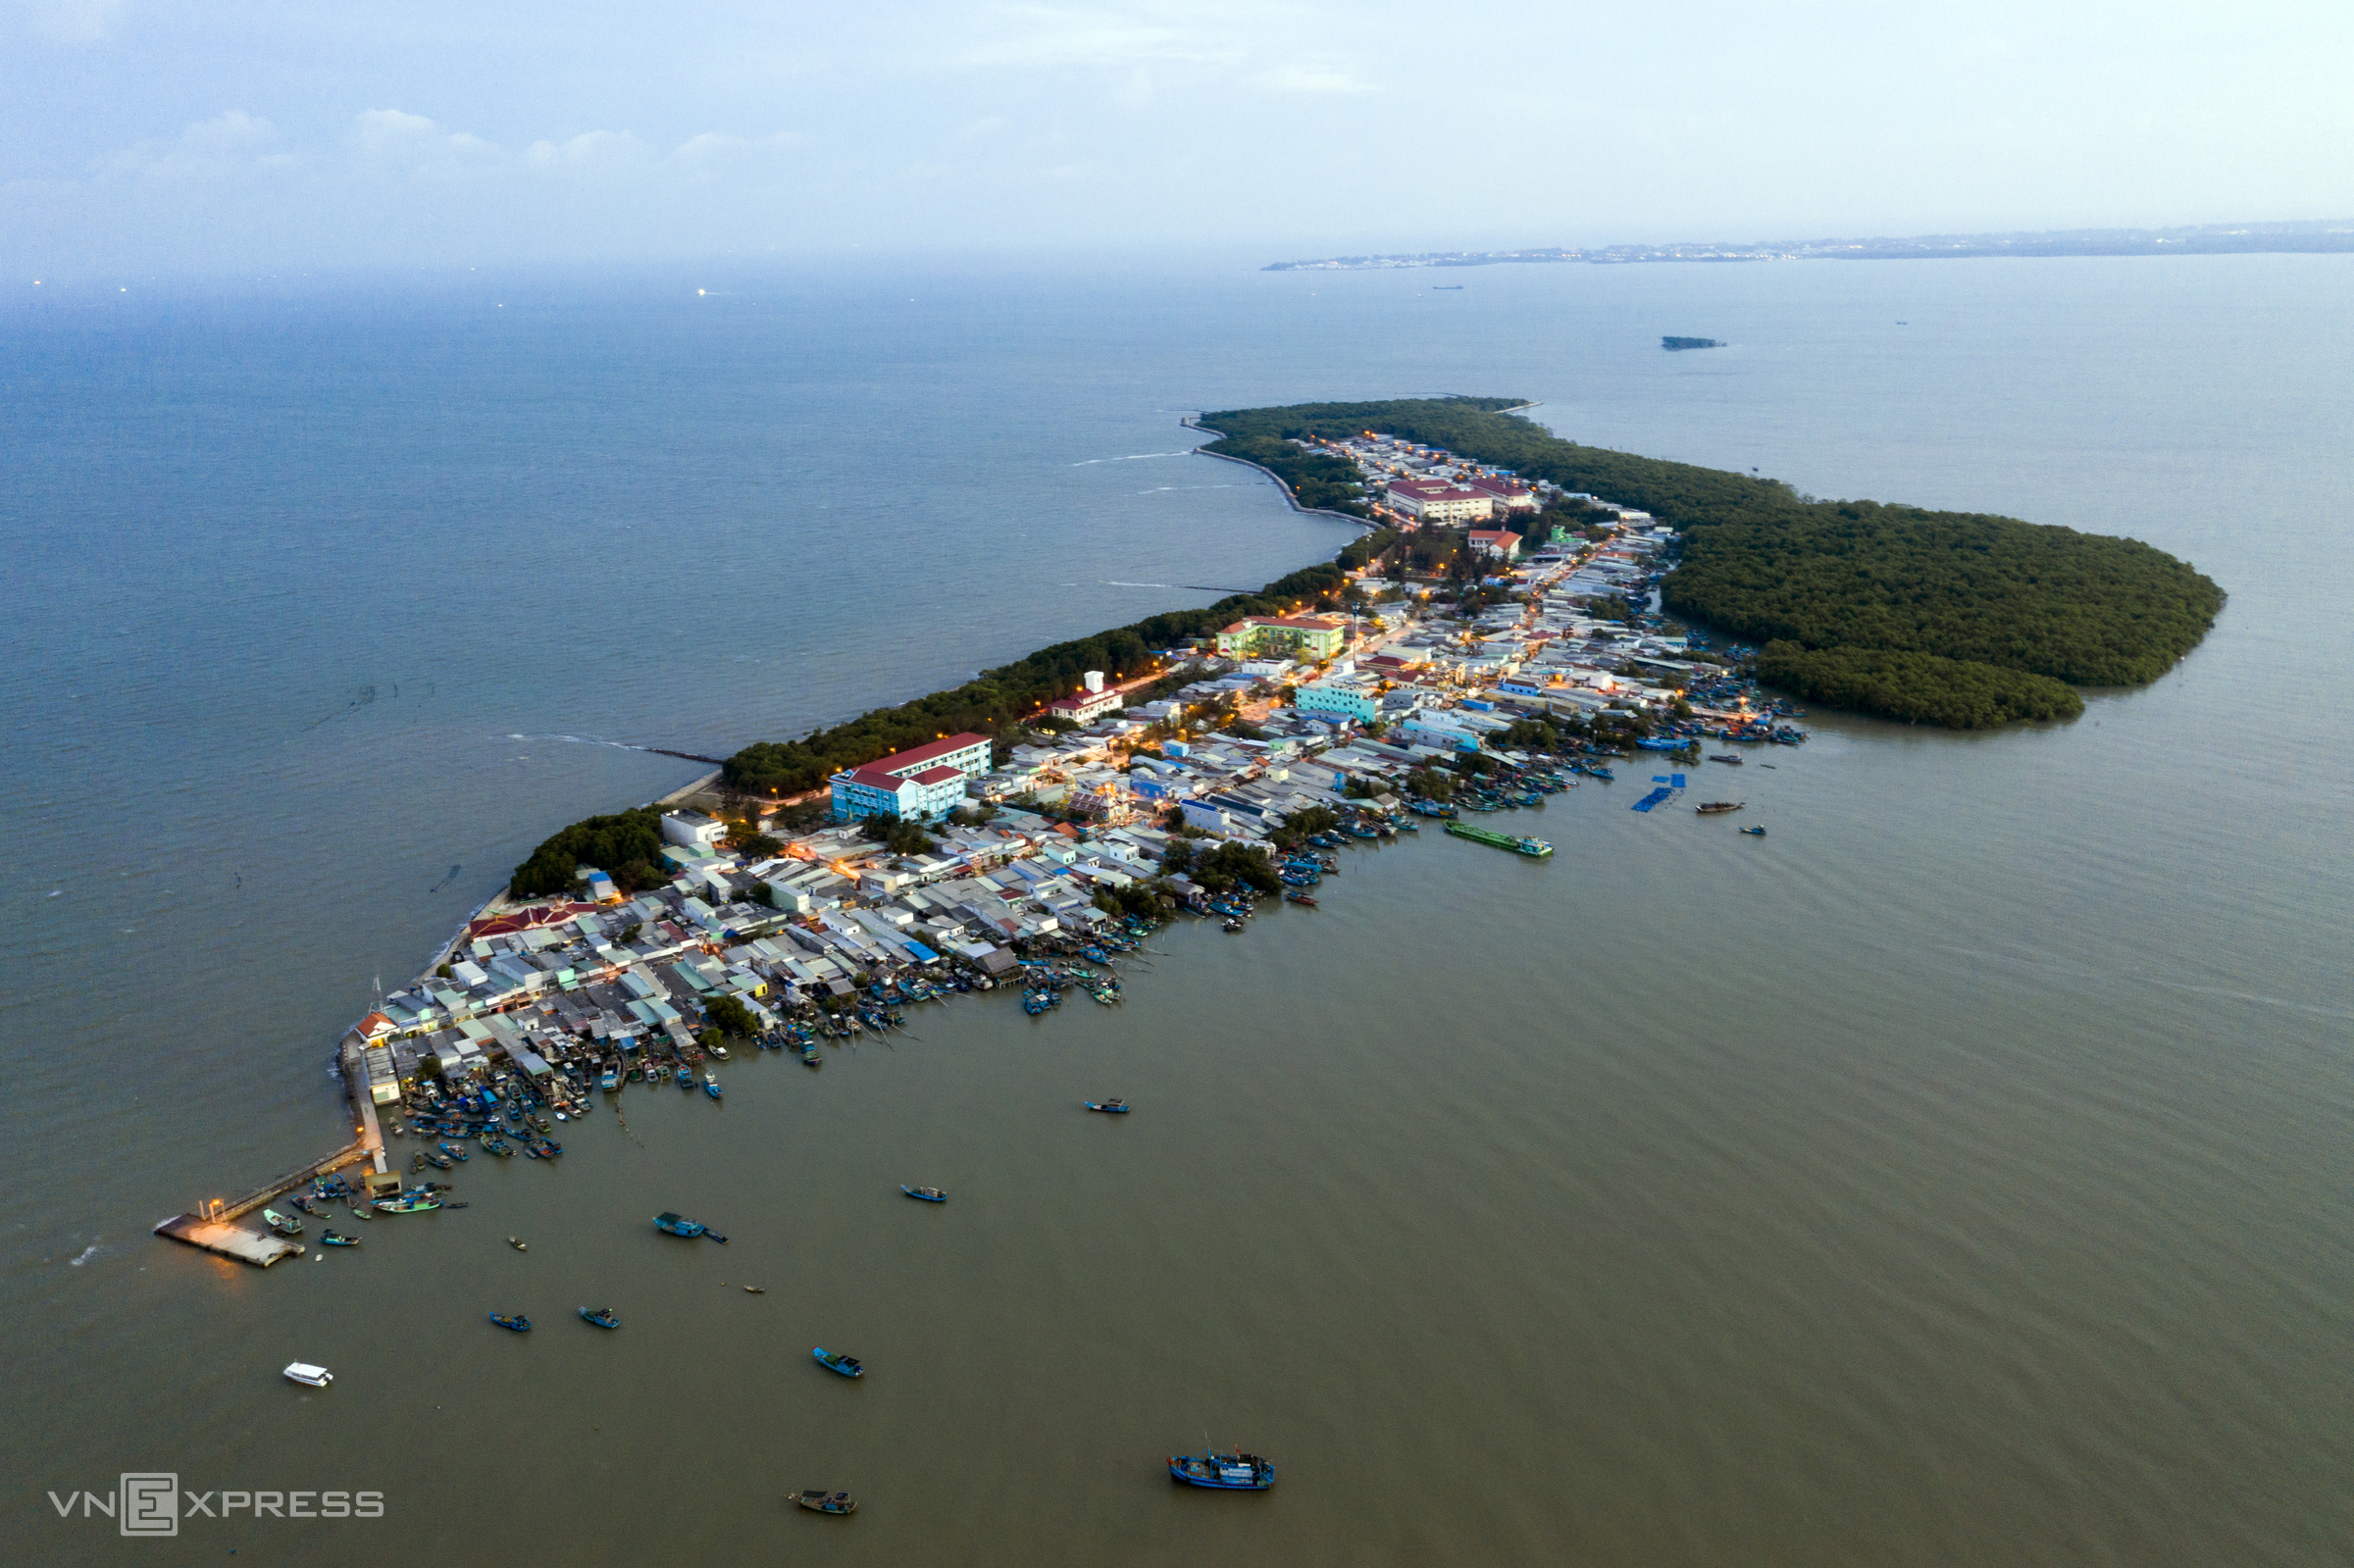 An drone shot of Thanh An island from above. It is one of six communes in Can Gio District, about 46 km southeast of HCMC.There are around 4,500 residents living on the island. Thanh An is surrounded by protective forests, with a total area of more than 13,000 hectares, accounting for 18 percent of total land area in Can Gio.